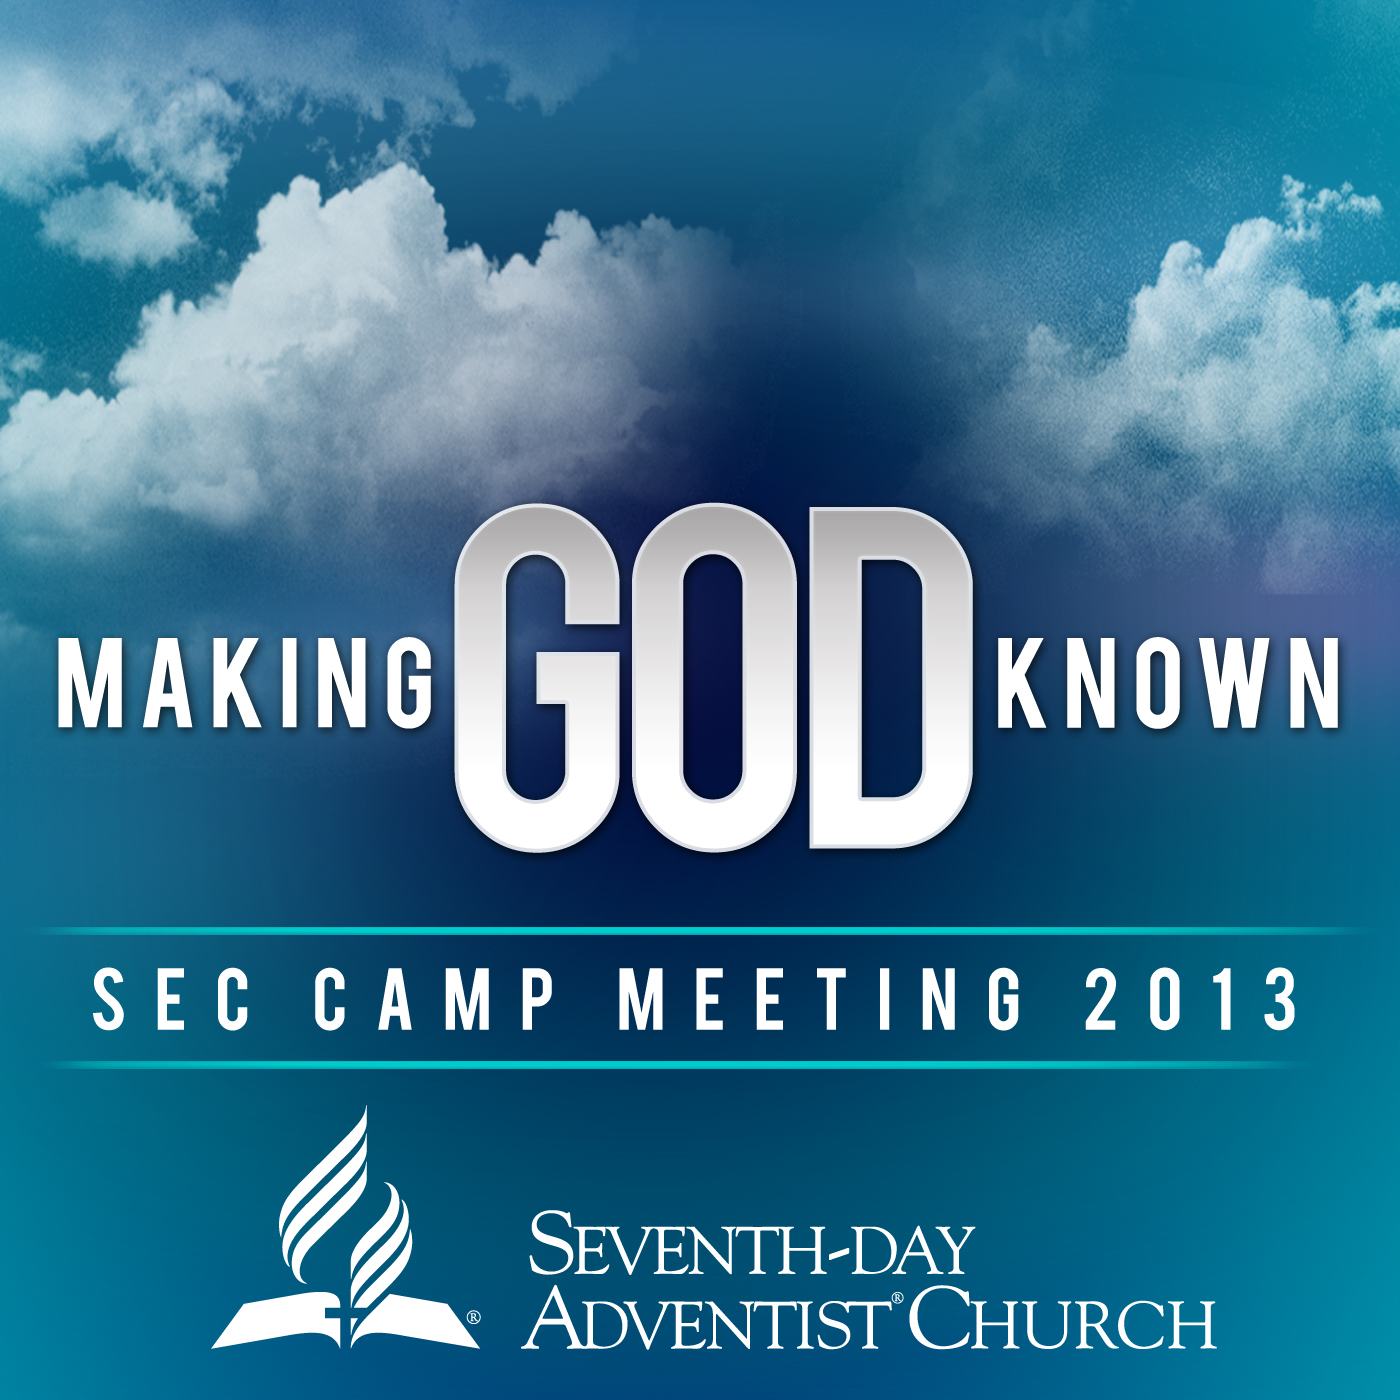 SEC Camp Meeting 2013